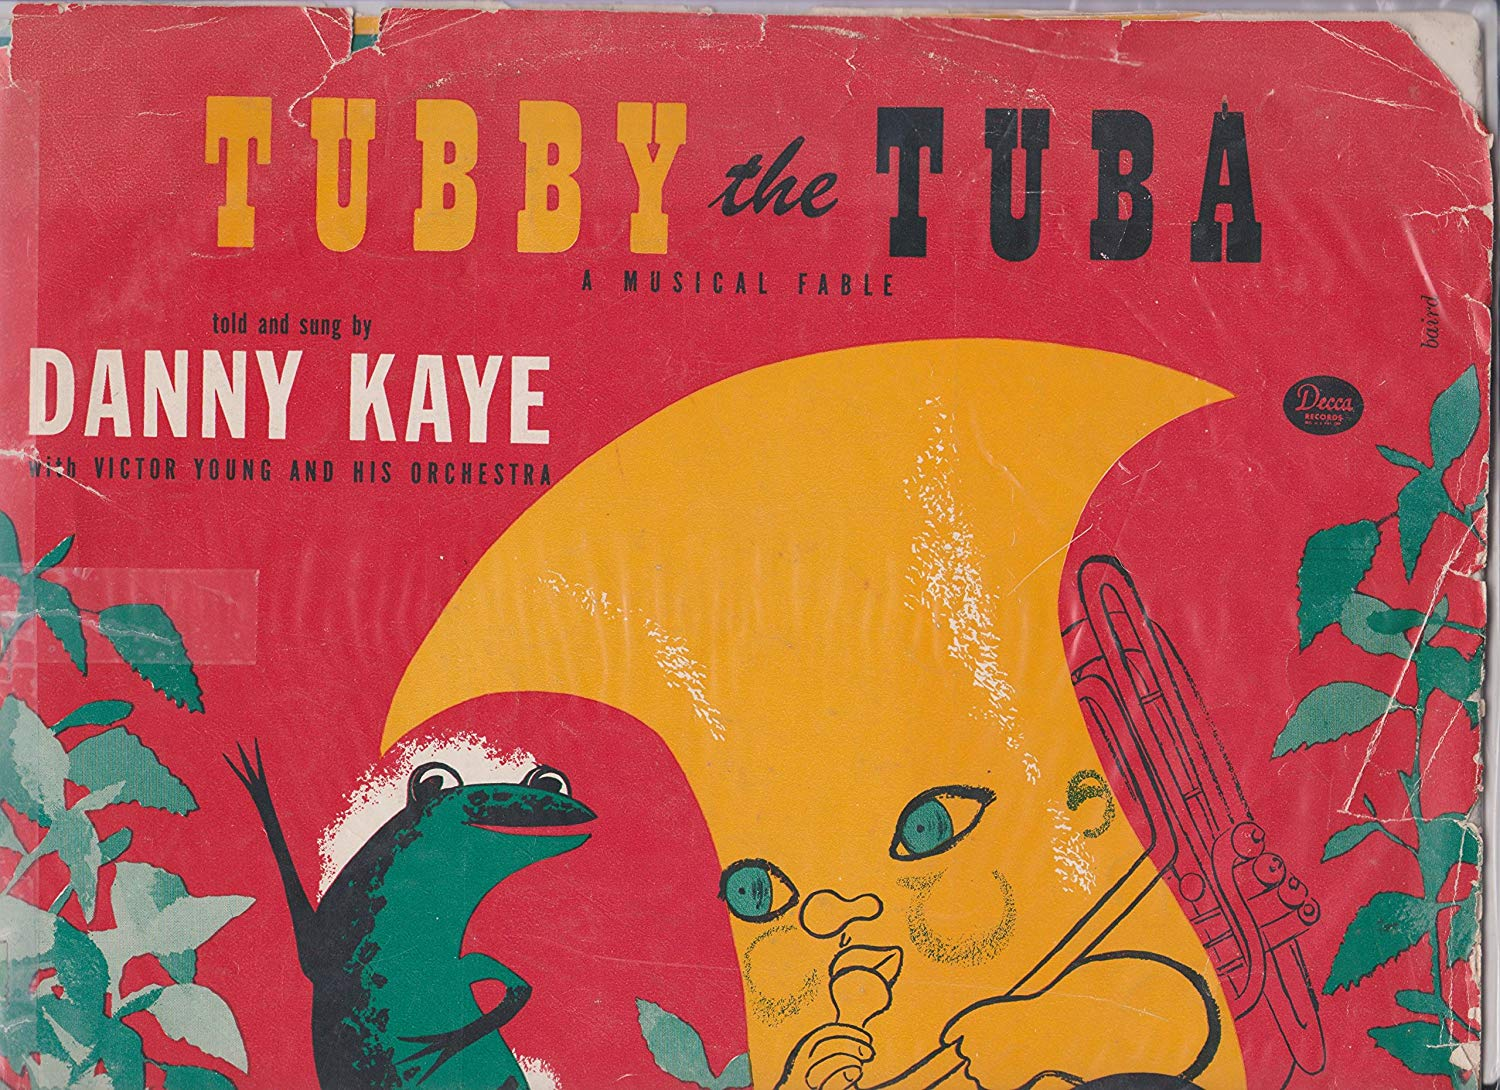 Tubby the Tuba - lyrics were written by Paul Tripp and music composed by George Kleinsinger. The original recording featured Tripp's narration. The second recording, released on the Decca label, was sung by Danny Kaye.